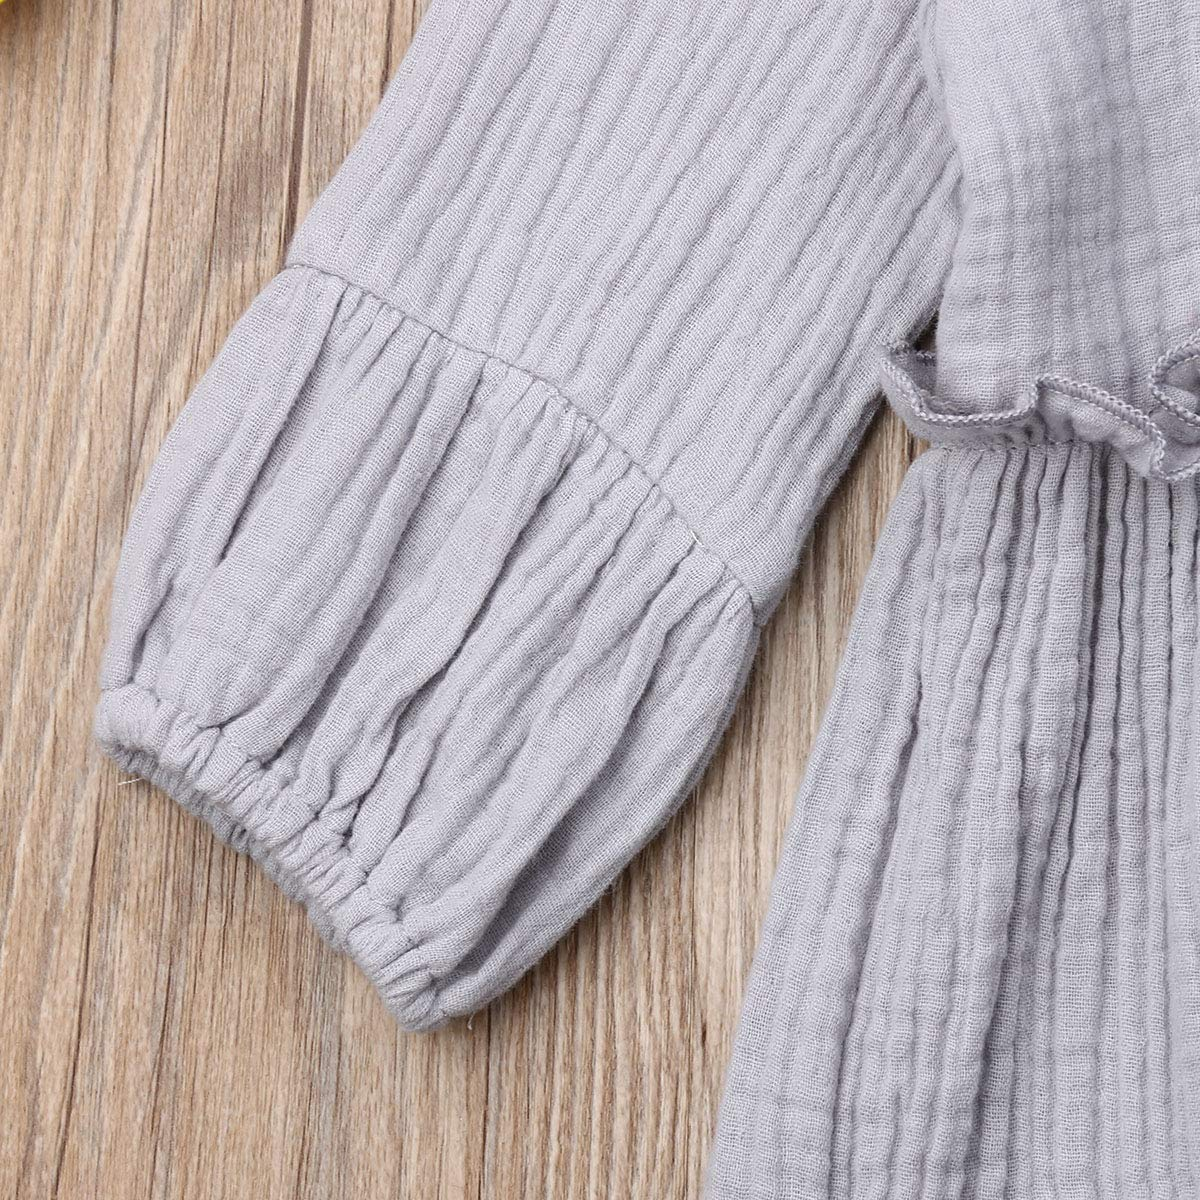 SUITLIM Toddler Infant Baby Girls Long Sleeve Solid Linen Ruffled Princess Dress Bowknot Headband Outfits Set